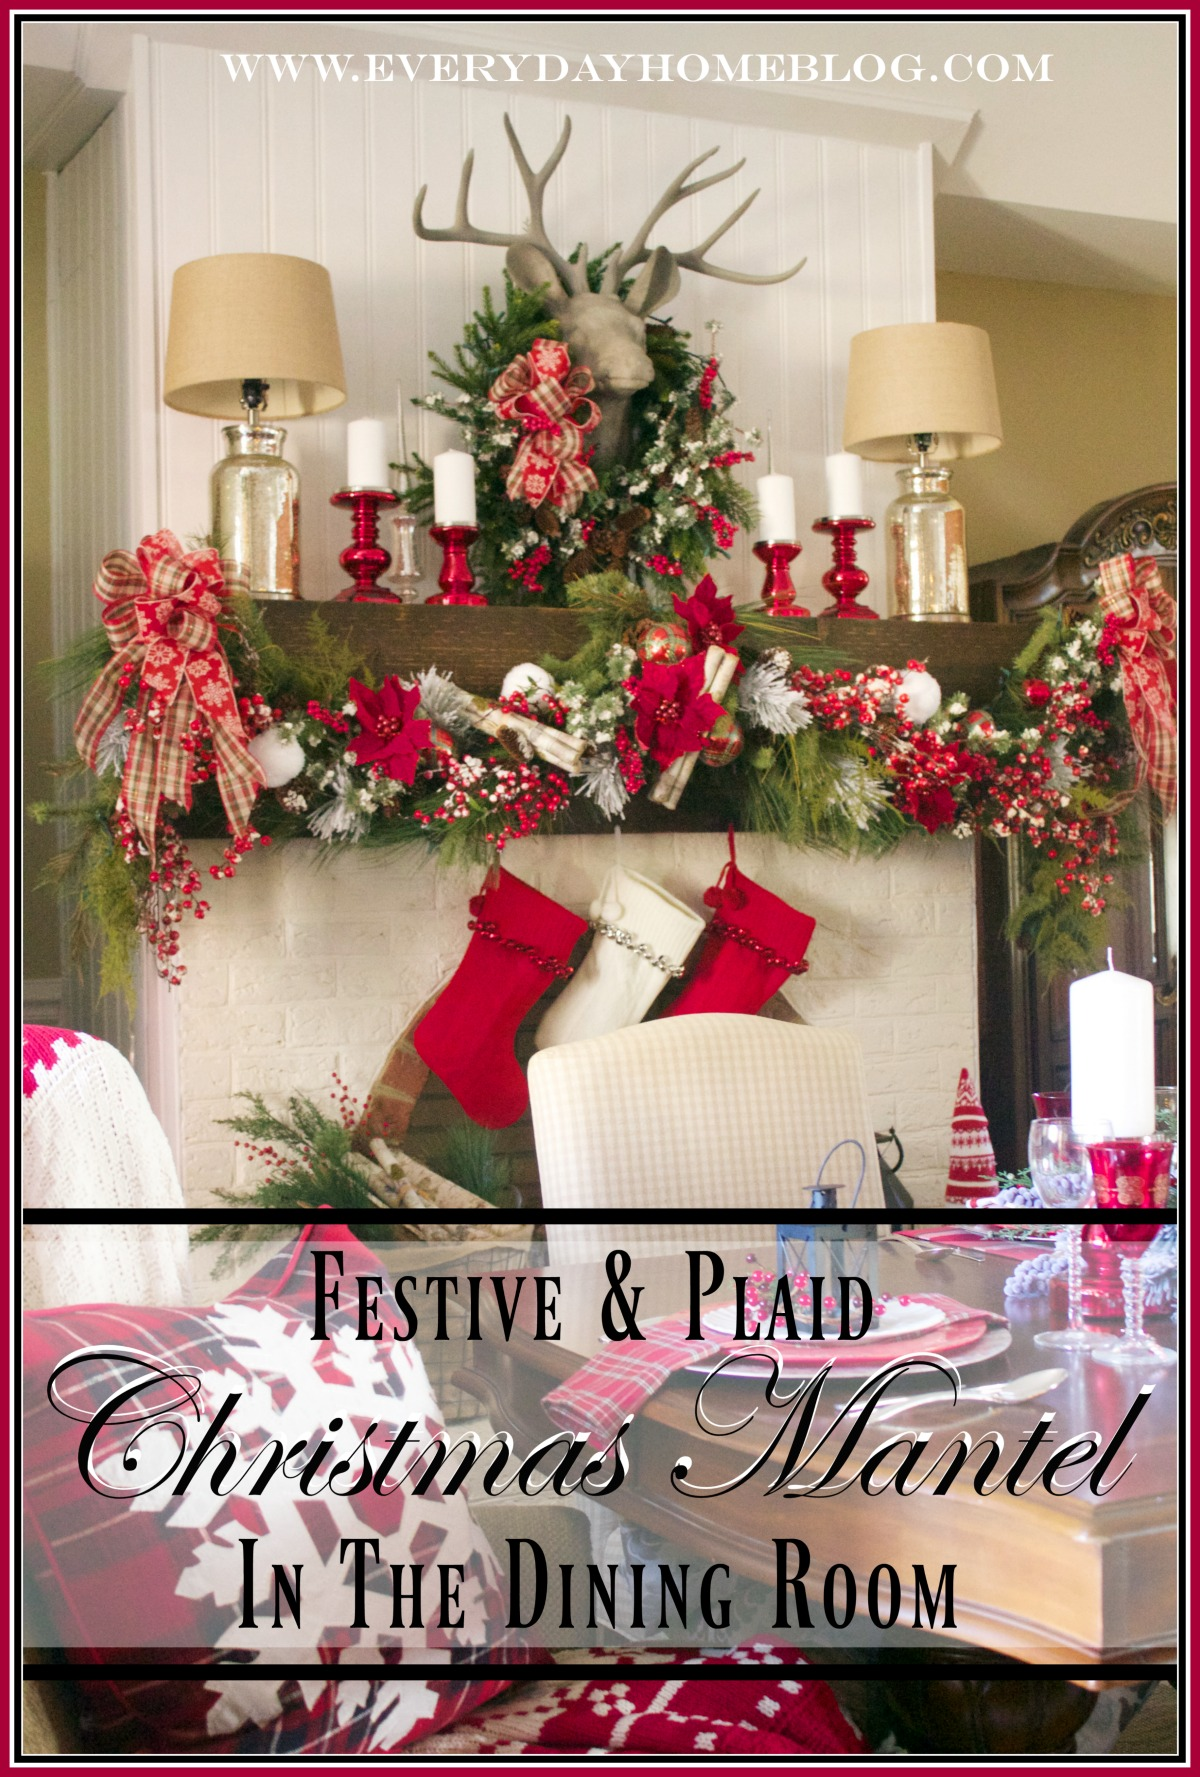 a-festive-plaid-christmas-mantel-in-the-dining-room | The Everyday Home | www.everydayhomeblog.com